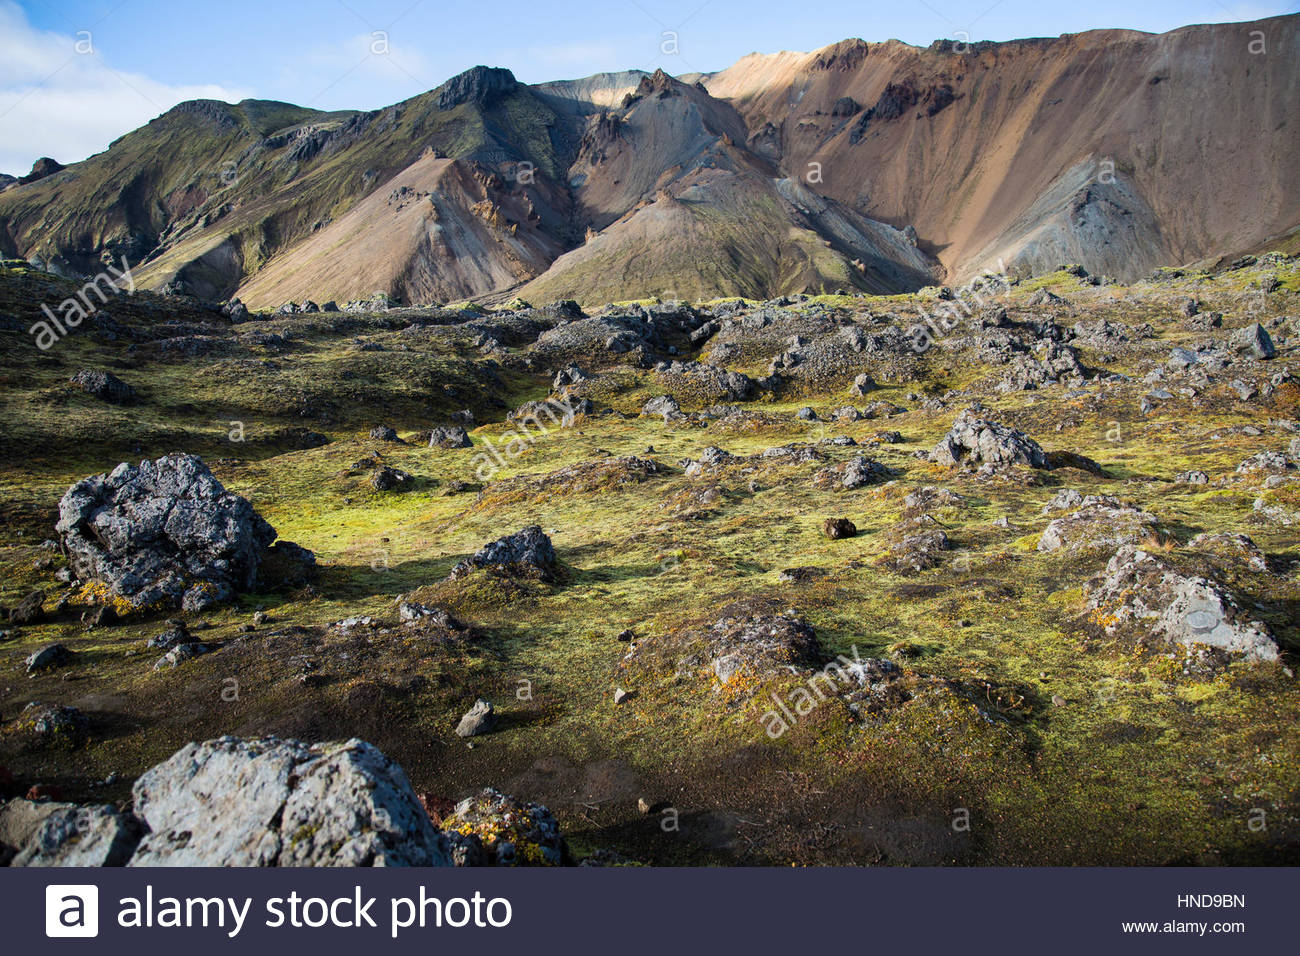 Exploring Iceland Nature Reserve Stock Photo